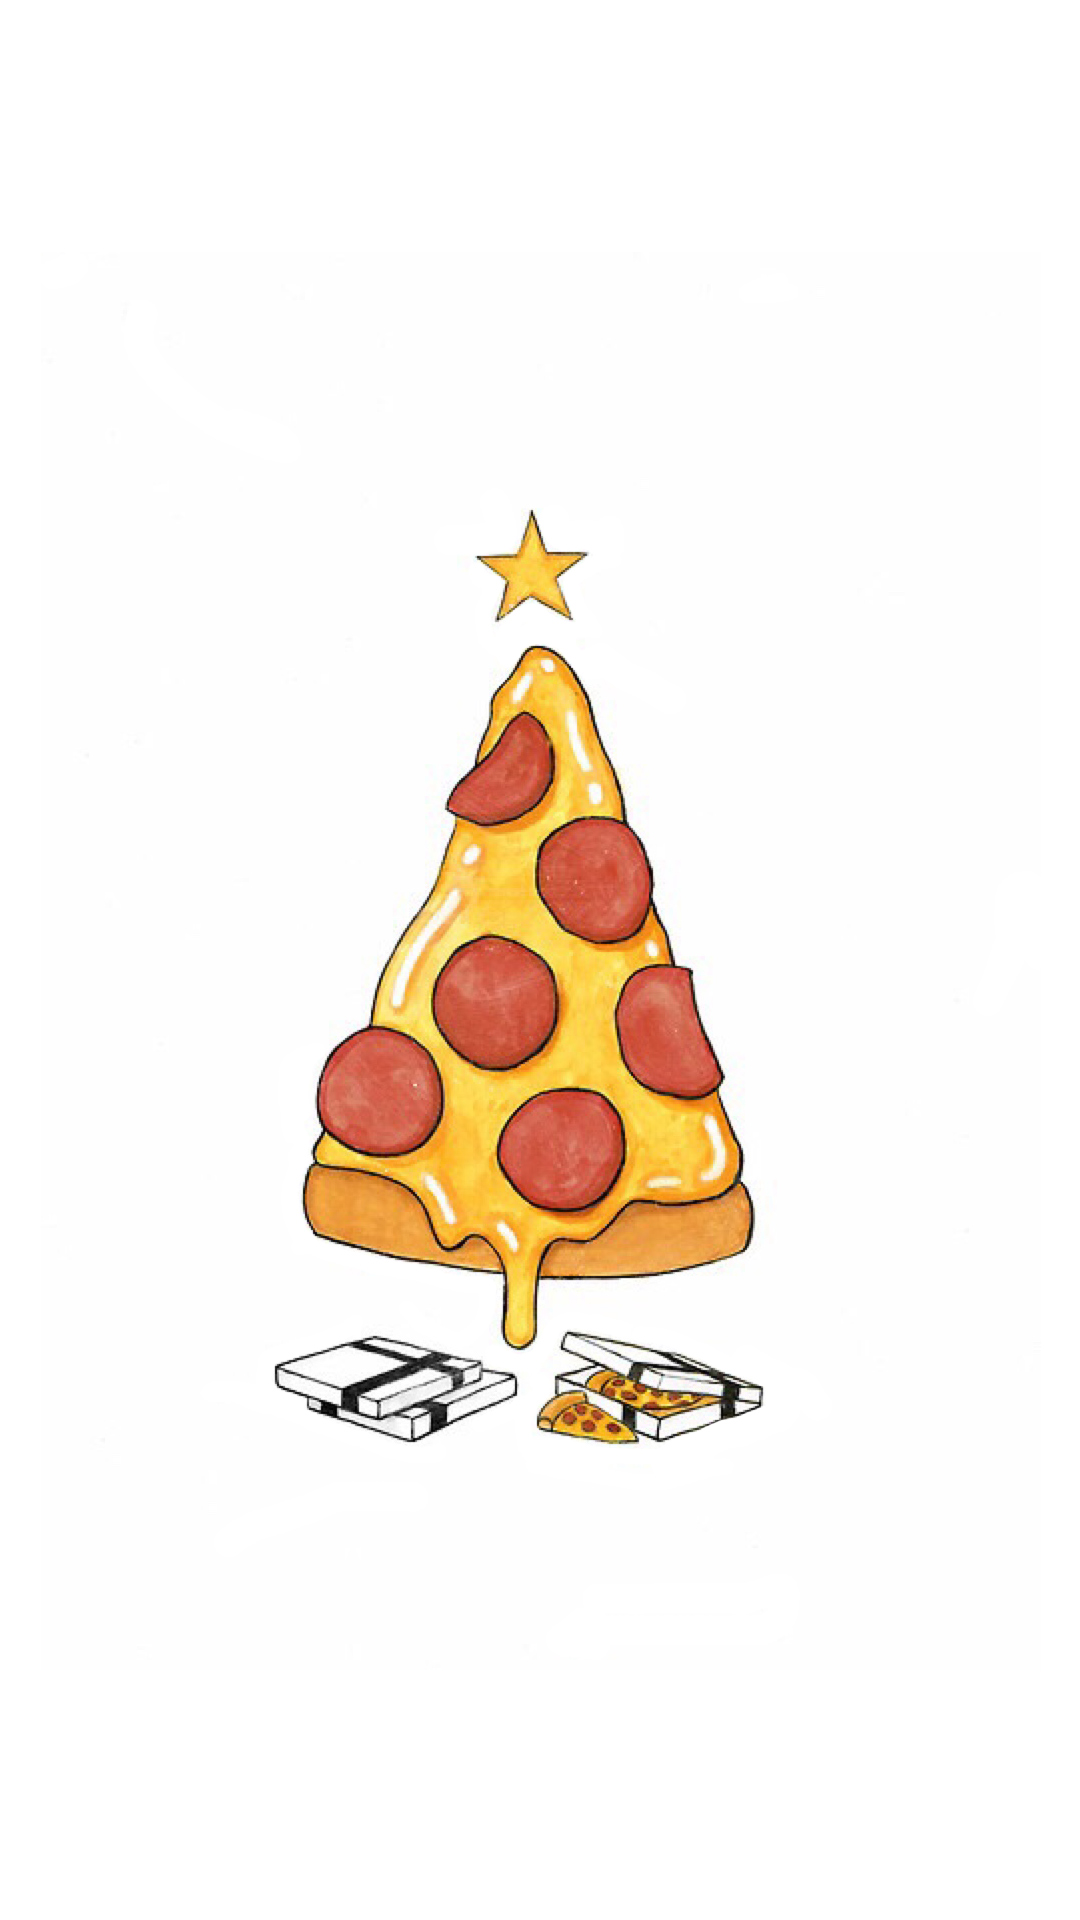 Funny Pizza Christmas Tree Android Wallpaper   Funny Christmas 1080x1920